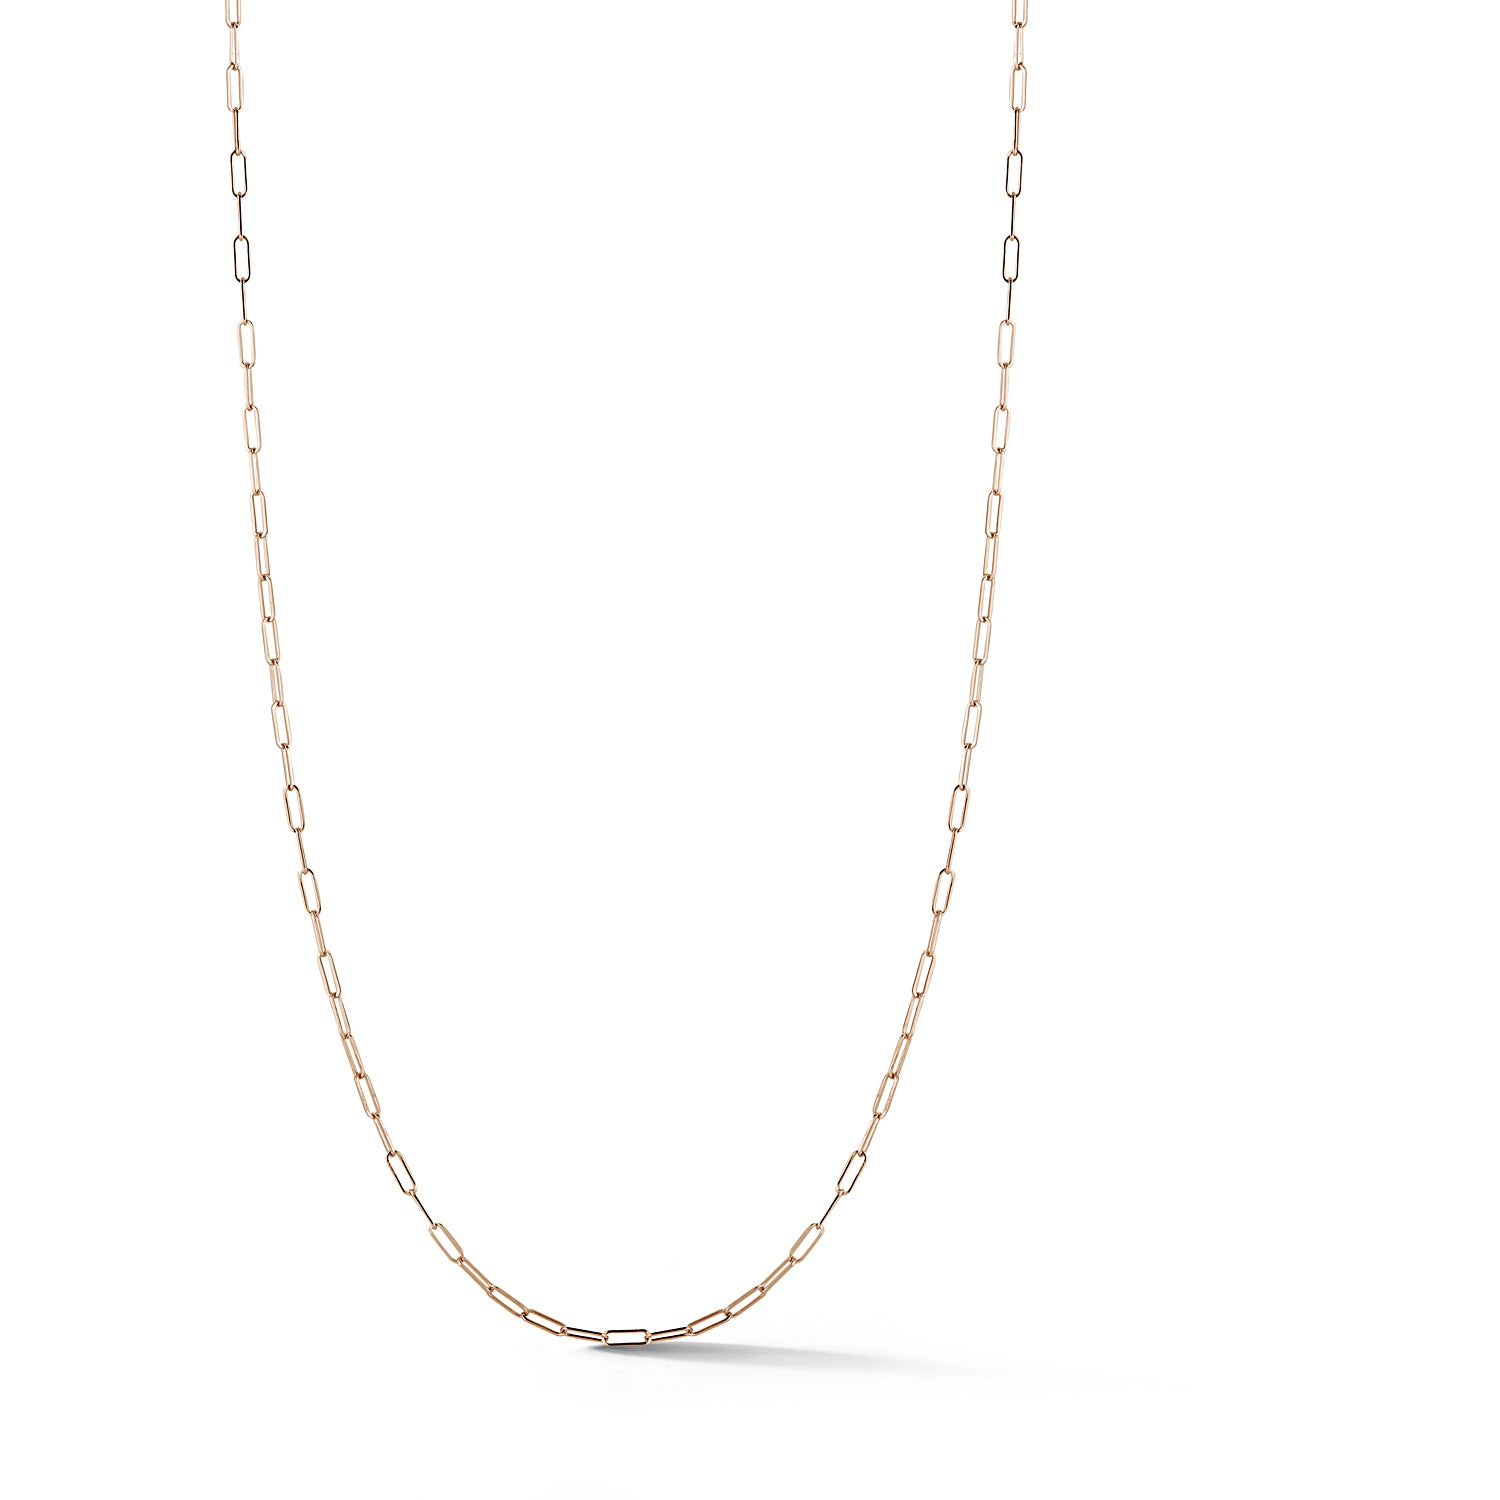 Les Classiques Small Link Handmade Gold Chain